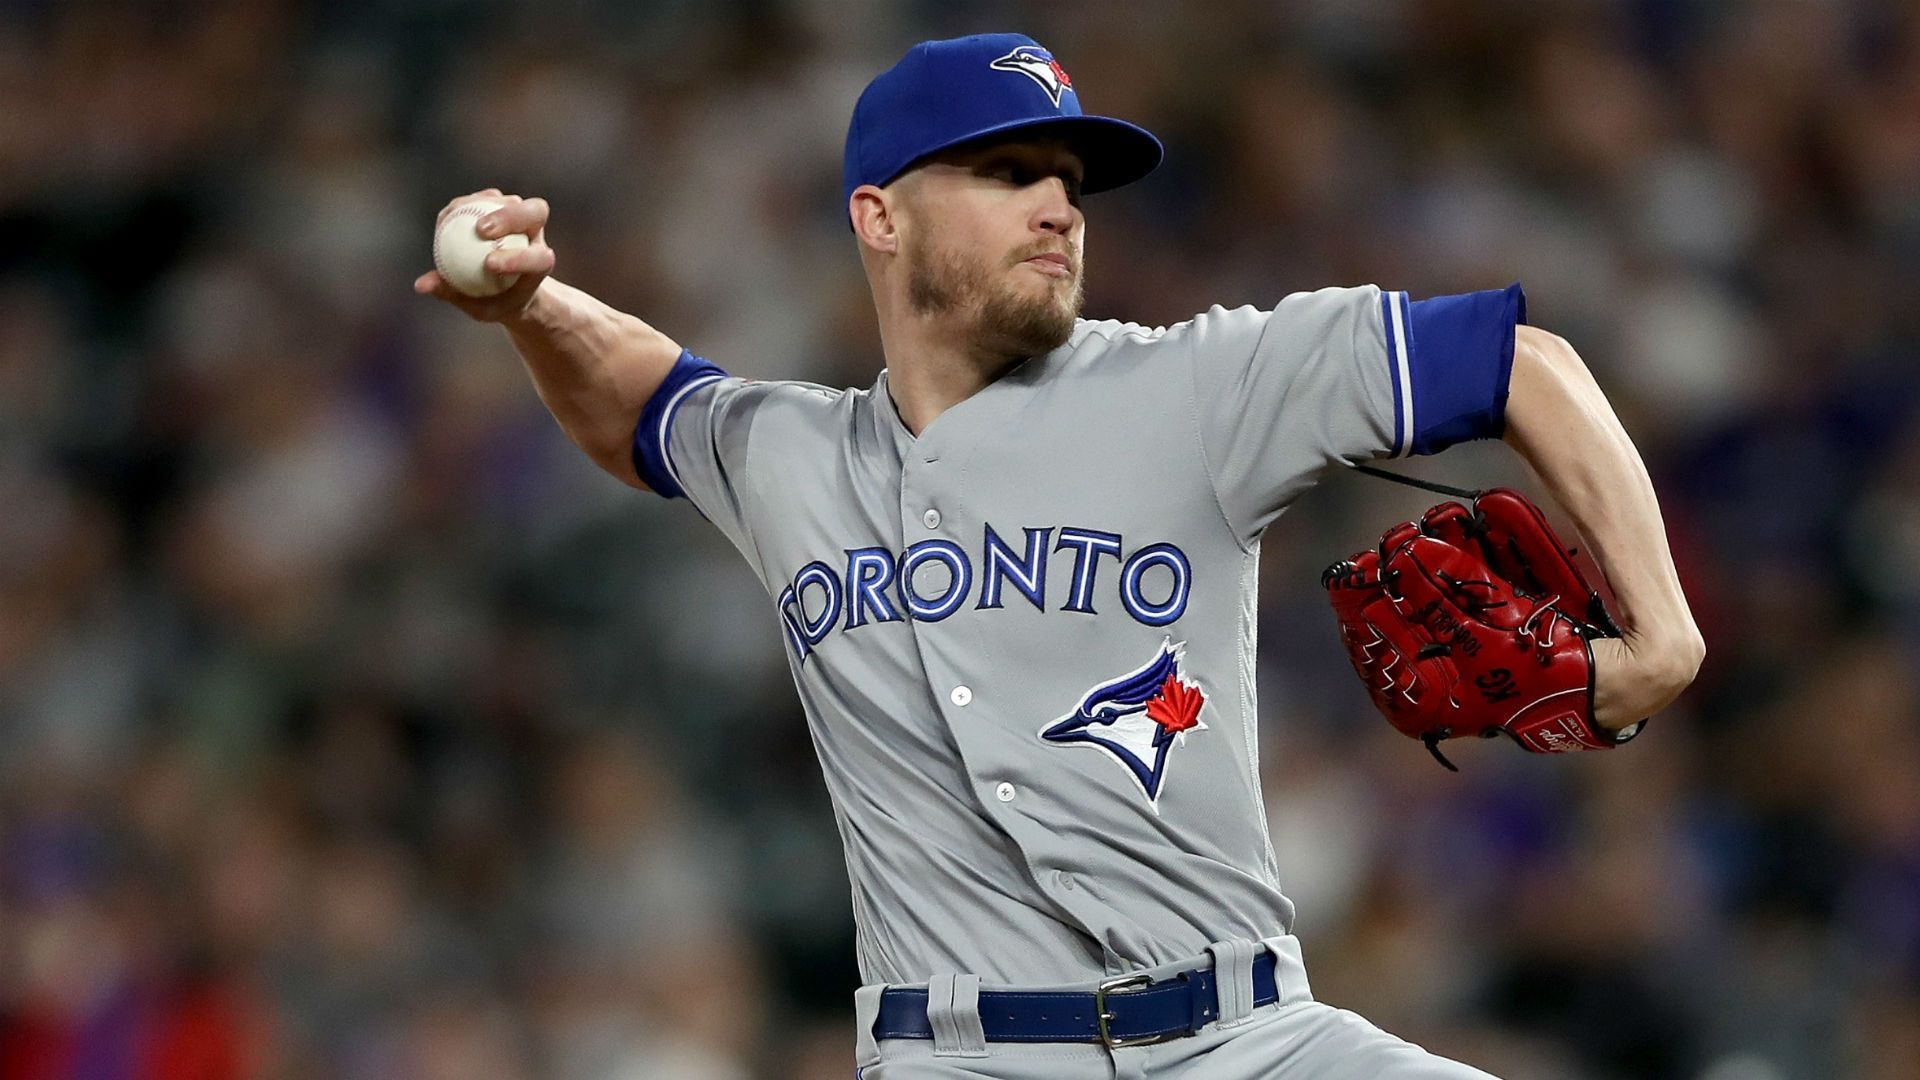 Mlb Trade Rumors Minnesota Twins Deals With Ken Giles Kirby Yates Mychal Givens And Noah Syndergaard Minnesota Twins Minnesota Mlb